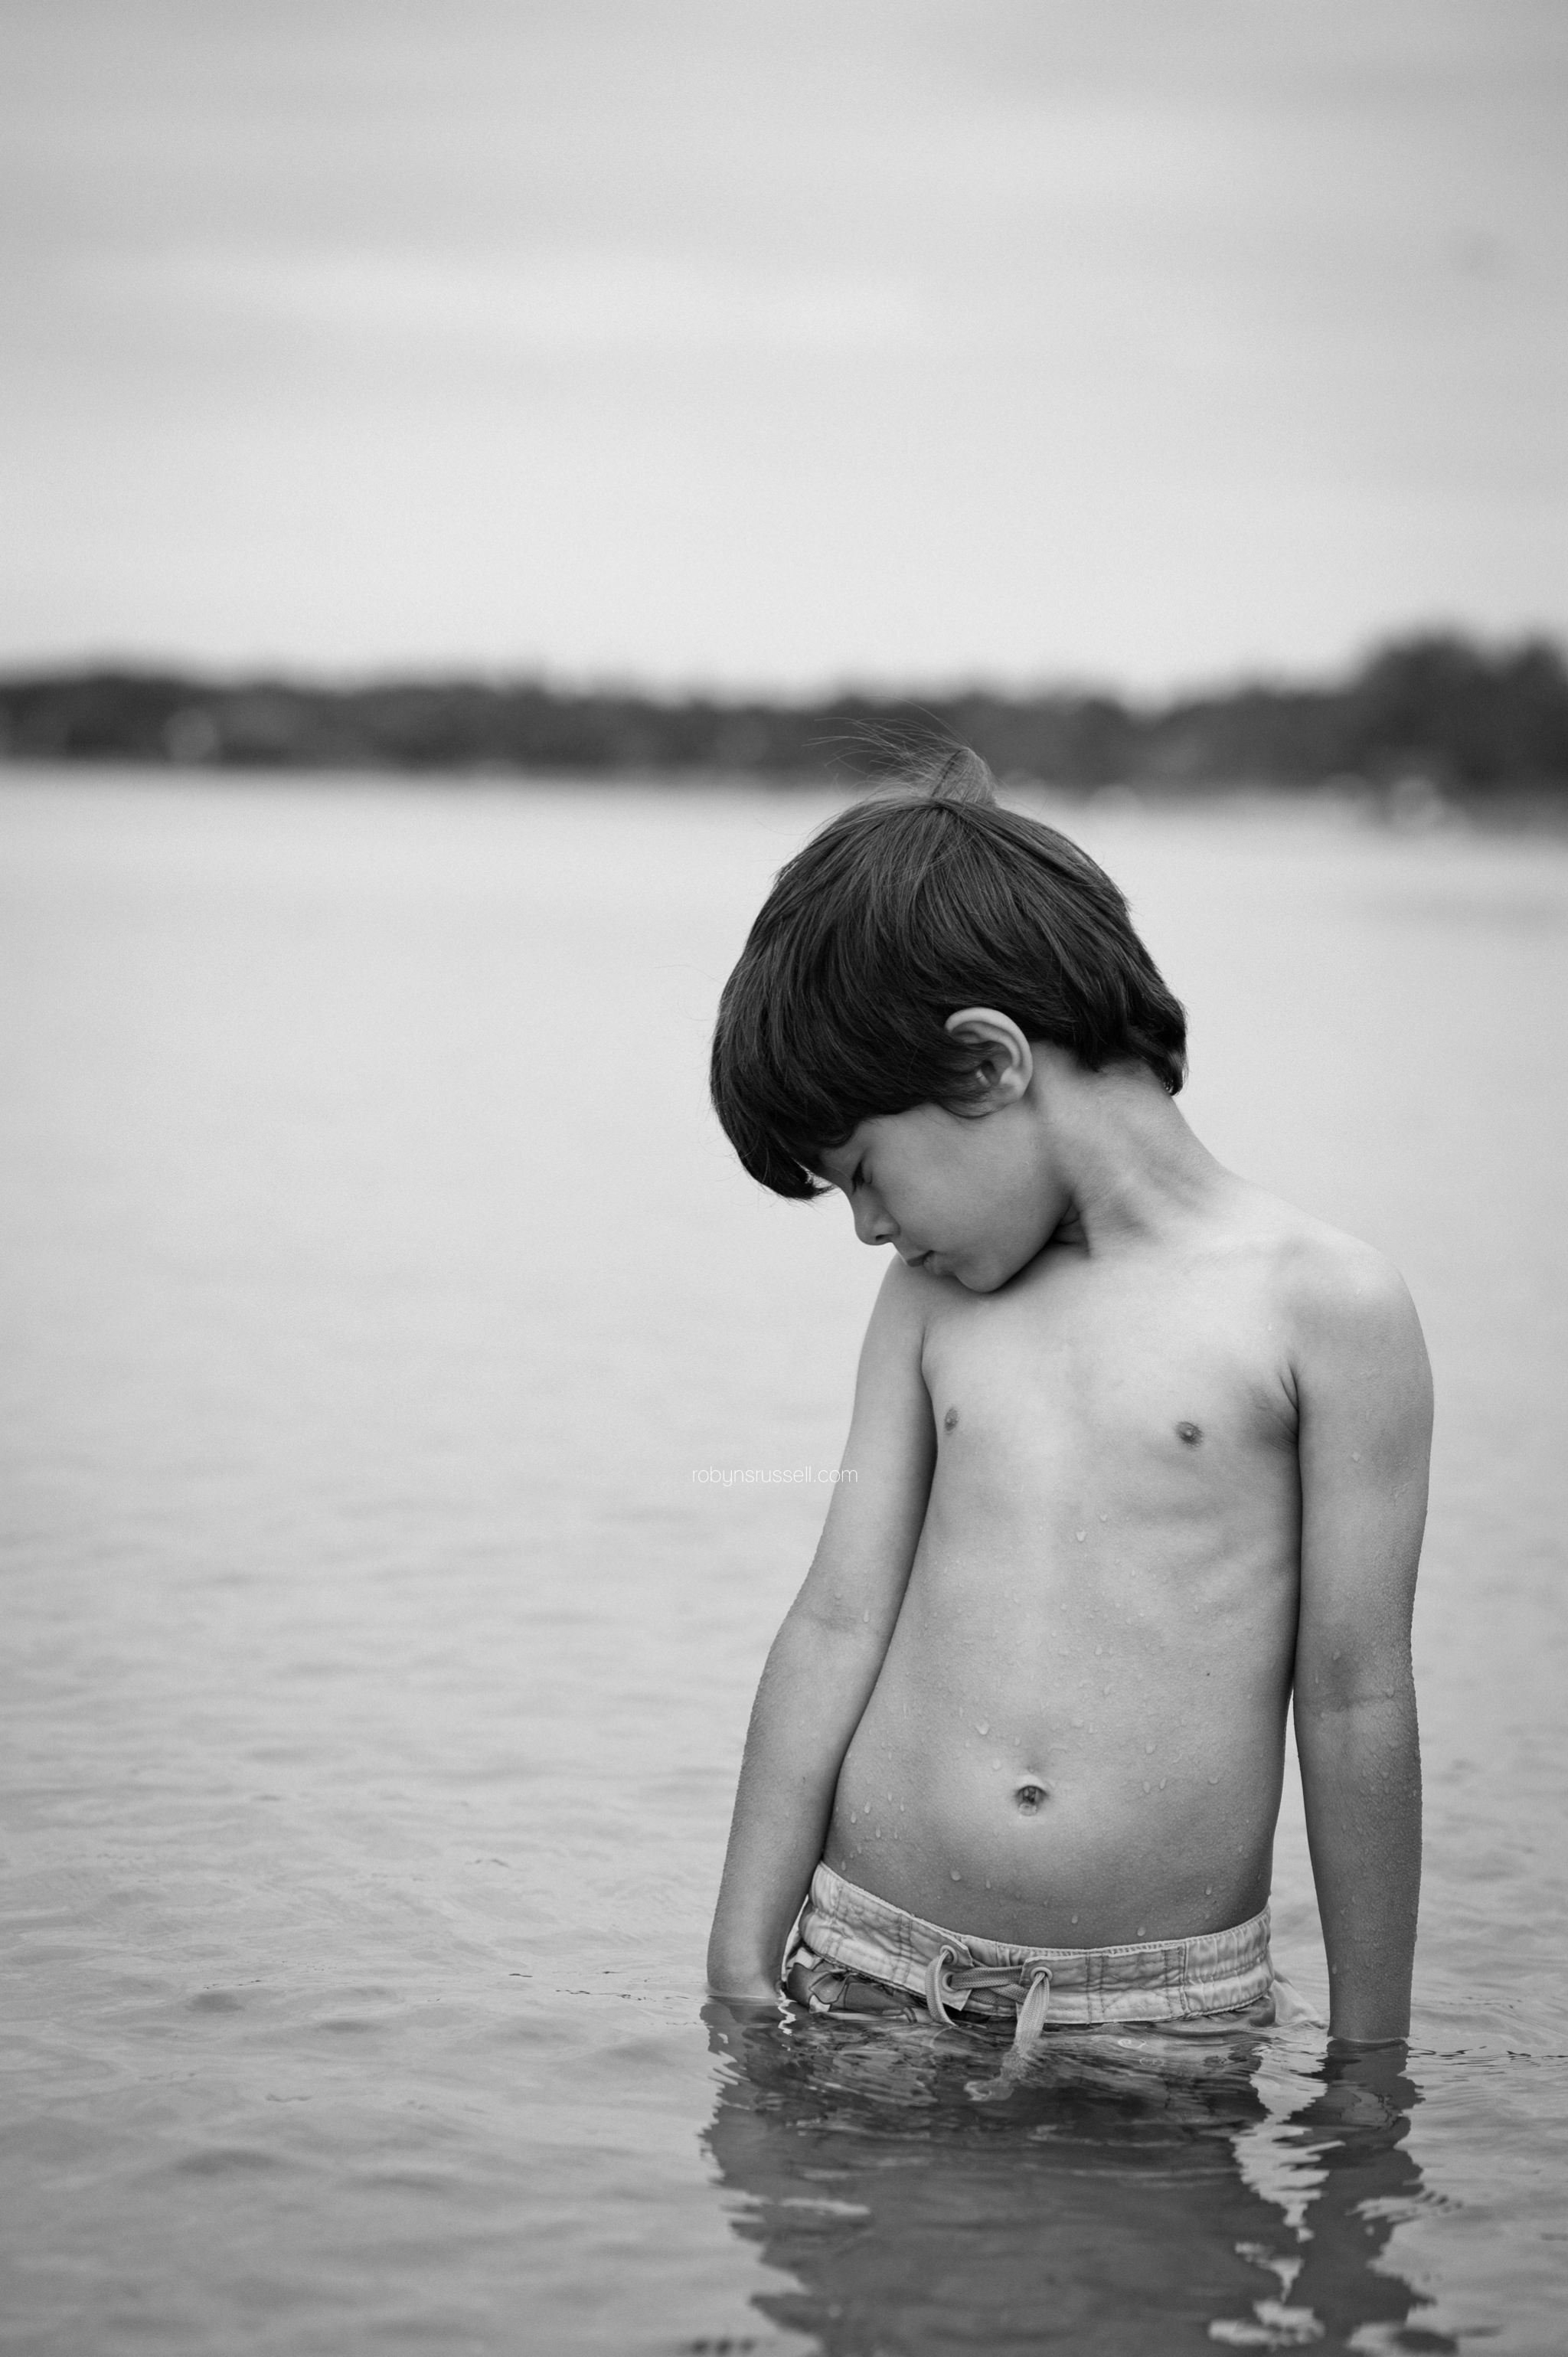 03-black-and-white-boy-in-water.jpg